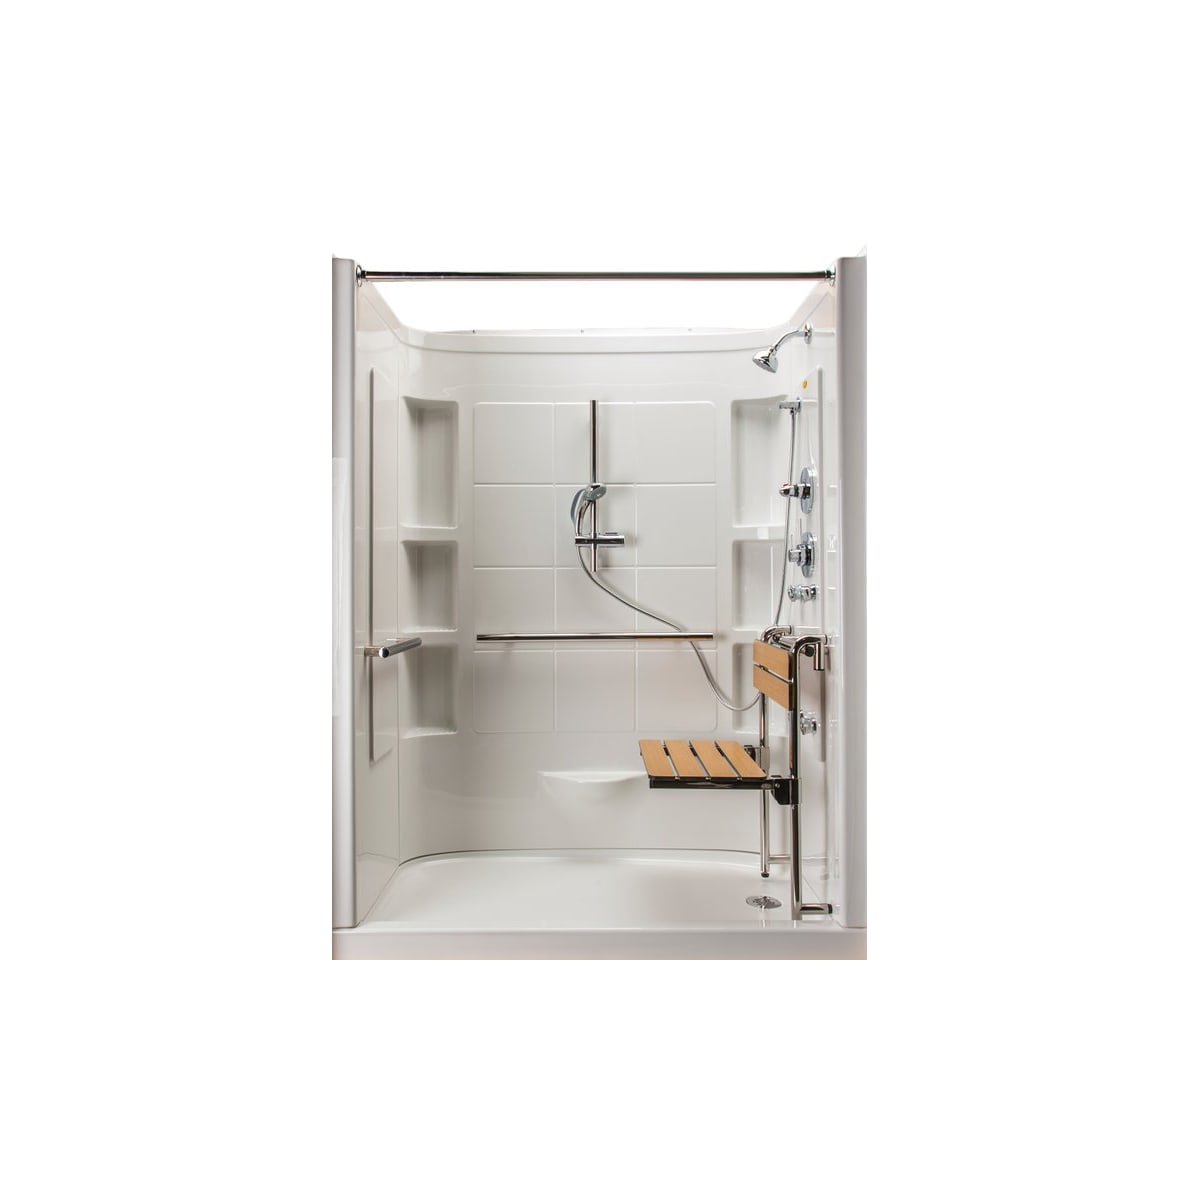 """Jacuzzi Finestra 60"""" x 30"""" Alcove Shower Module with Right Hand Drain, Removable Seat, Shower Head, Hand Shower, 4 Body Jets, and 3 Grab Bars"""